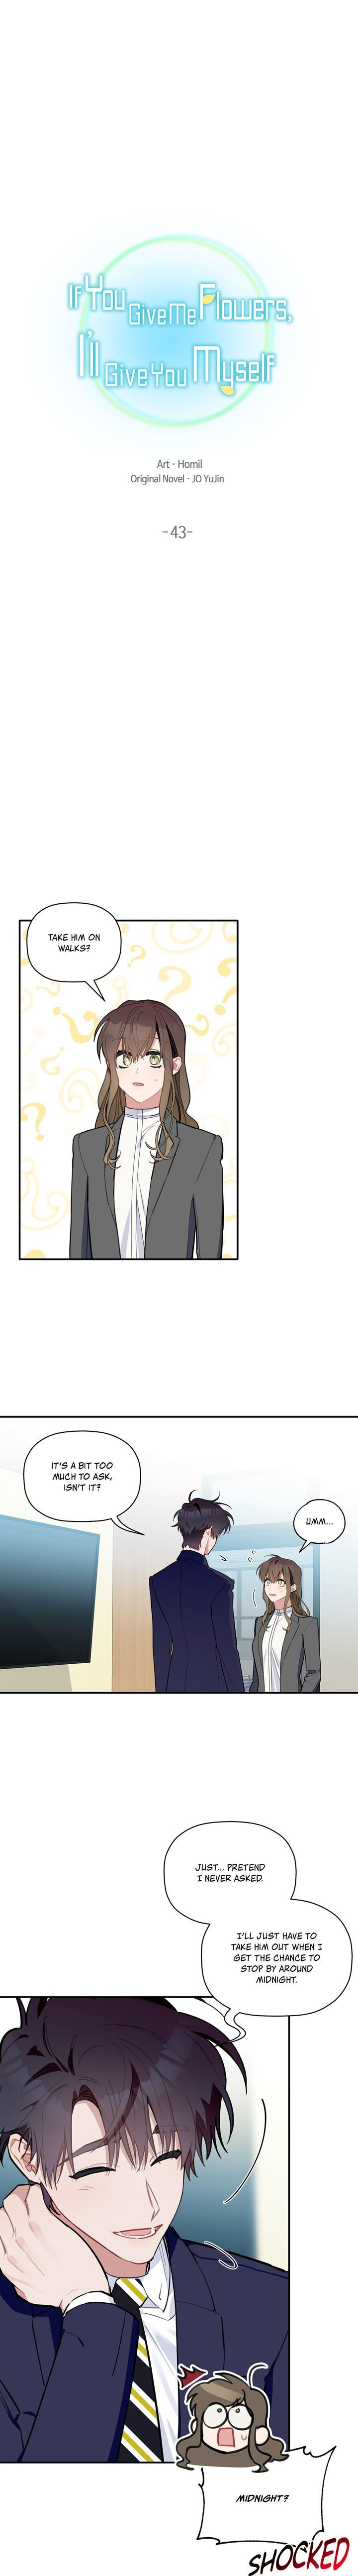 Give Me a Flower, and I'll Give You All of Me - chapter 43 - #2